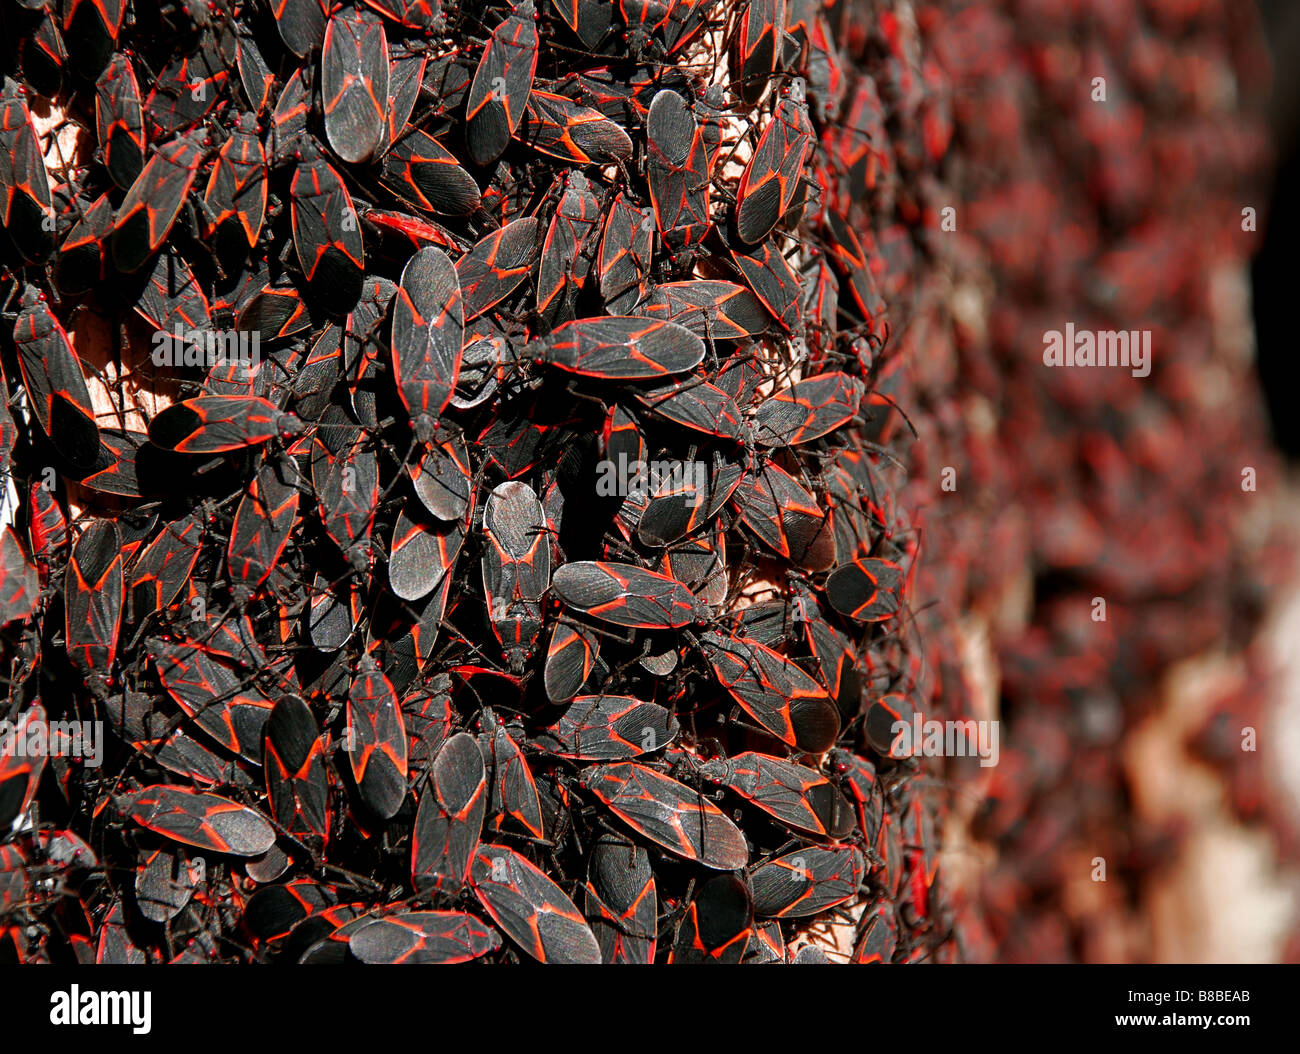 ... infestation or large group of red and black box elder bugs